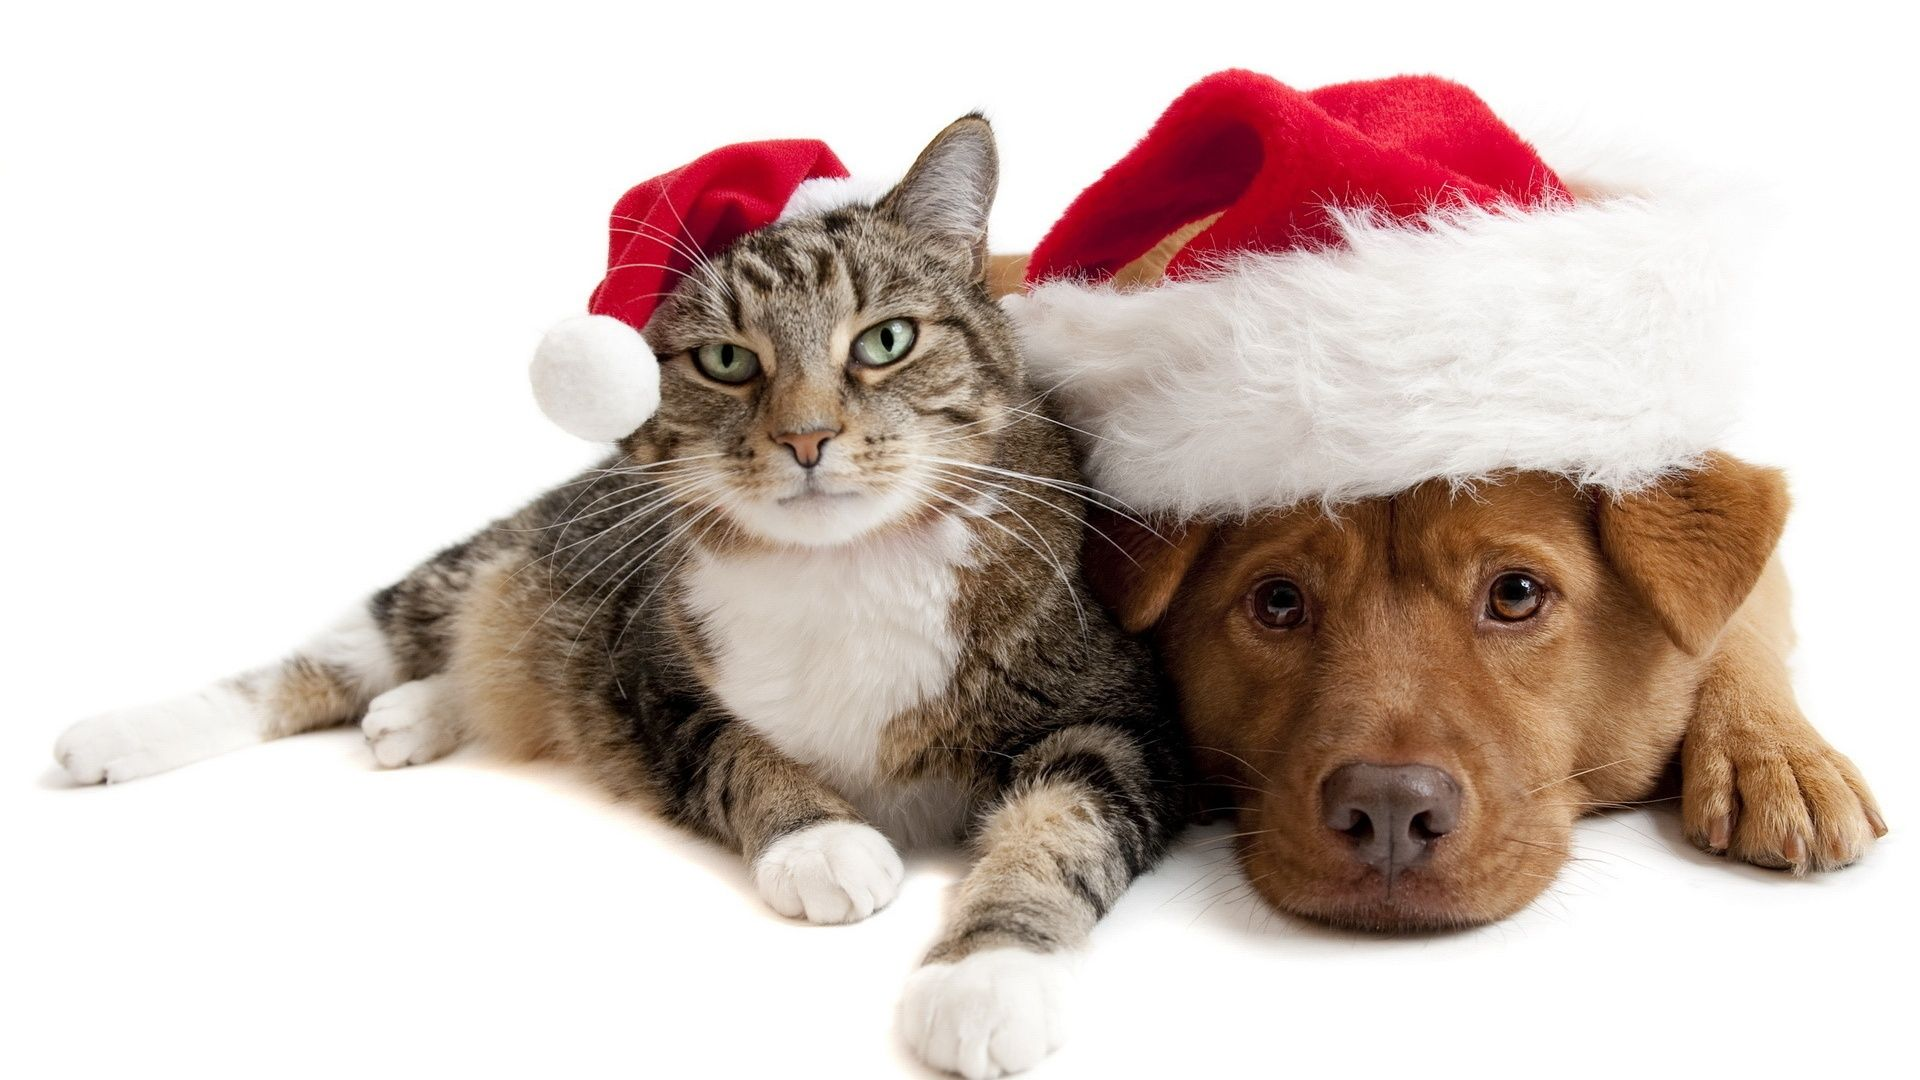 Cute Dog And Cat Wallpaper Wallpapers Backgrounds Images Art Photos Pet Holiday Christmas Cats Christmas Dog